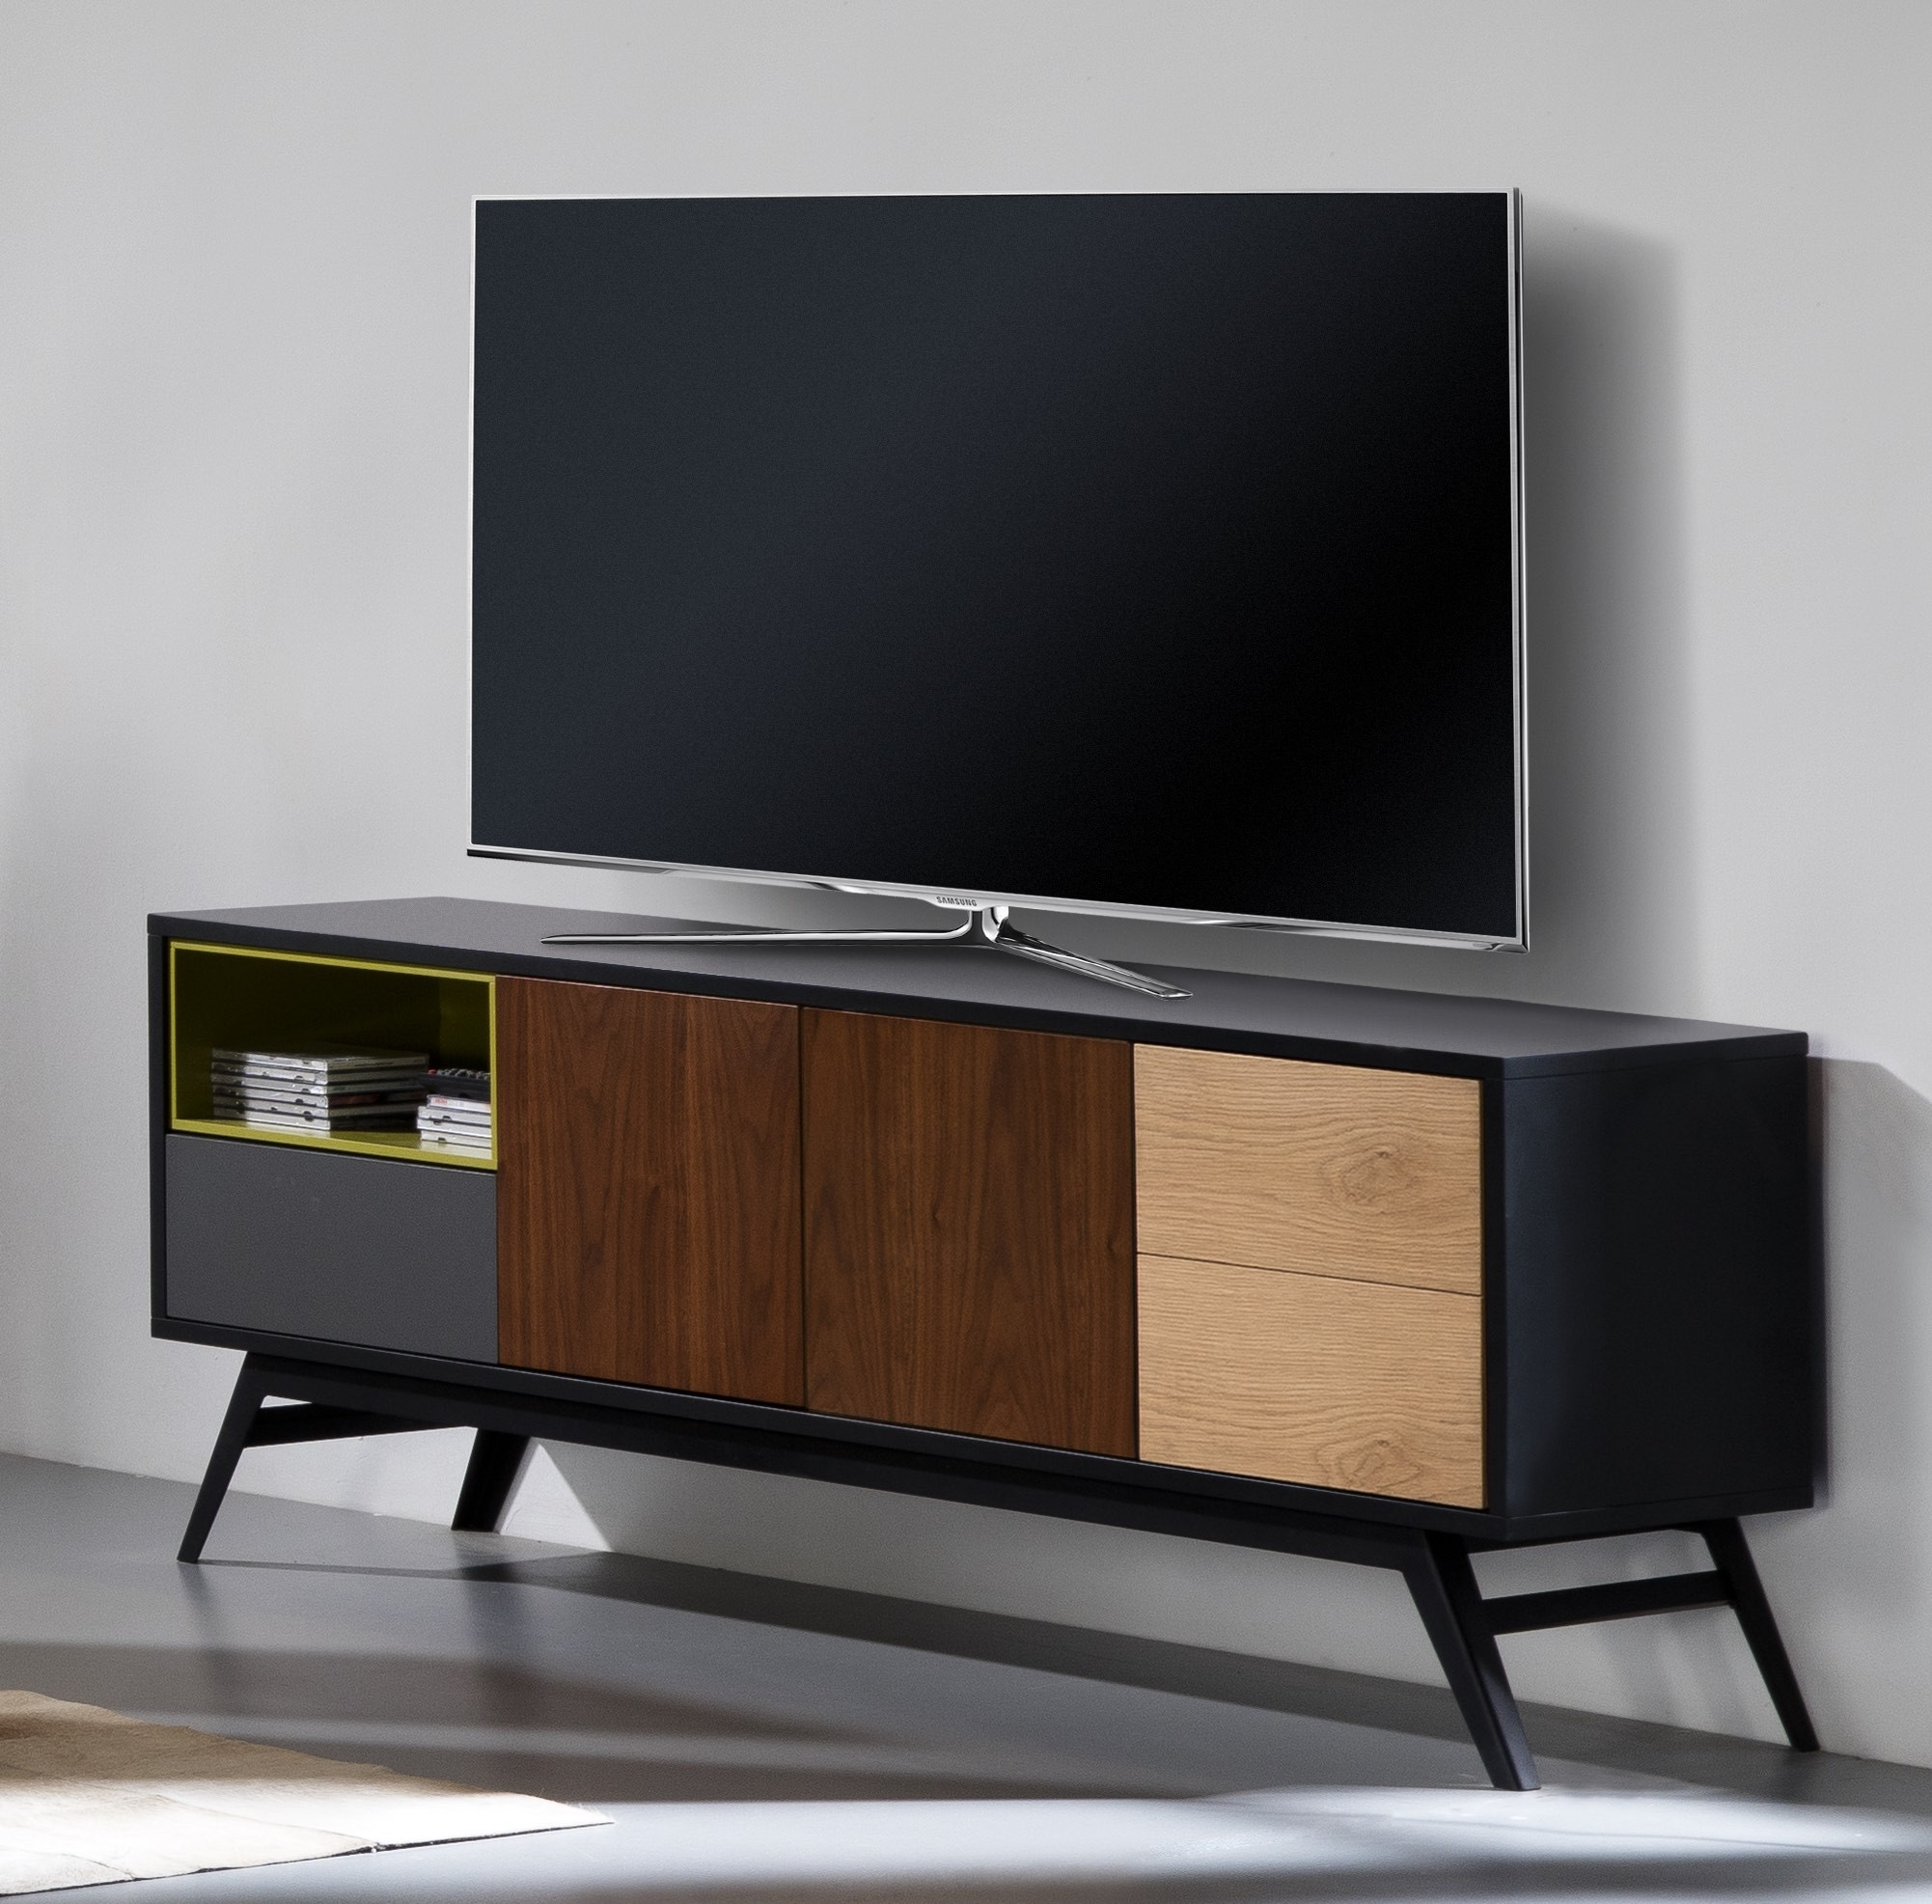 Meubles Tv Lemobilier Ma # Meuble Tv Ultra Fin